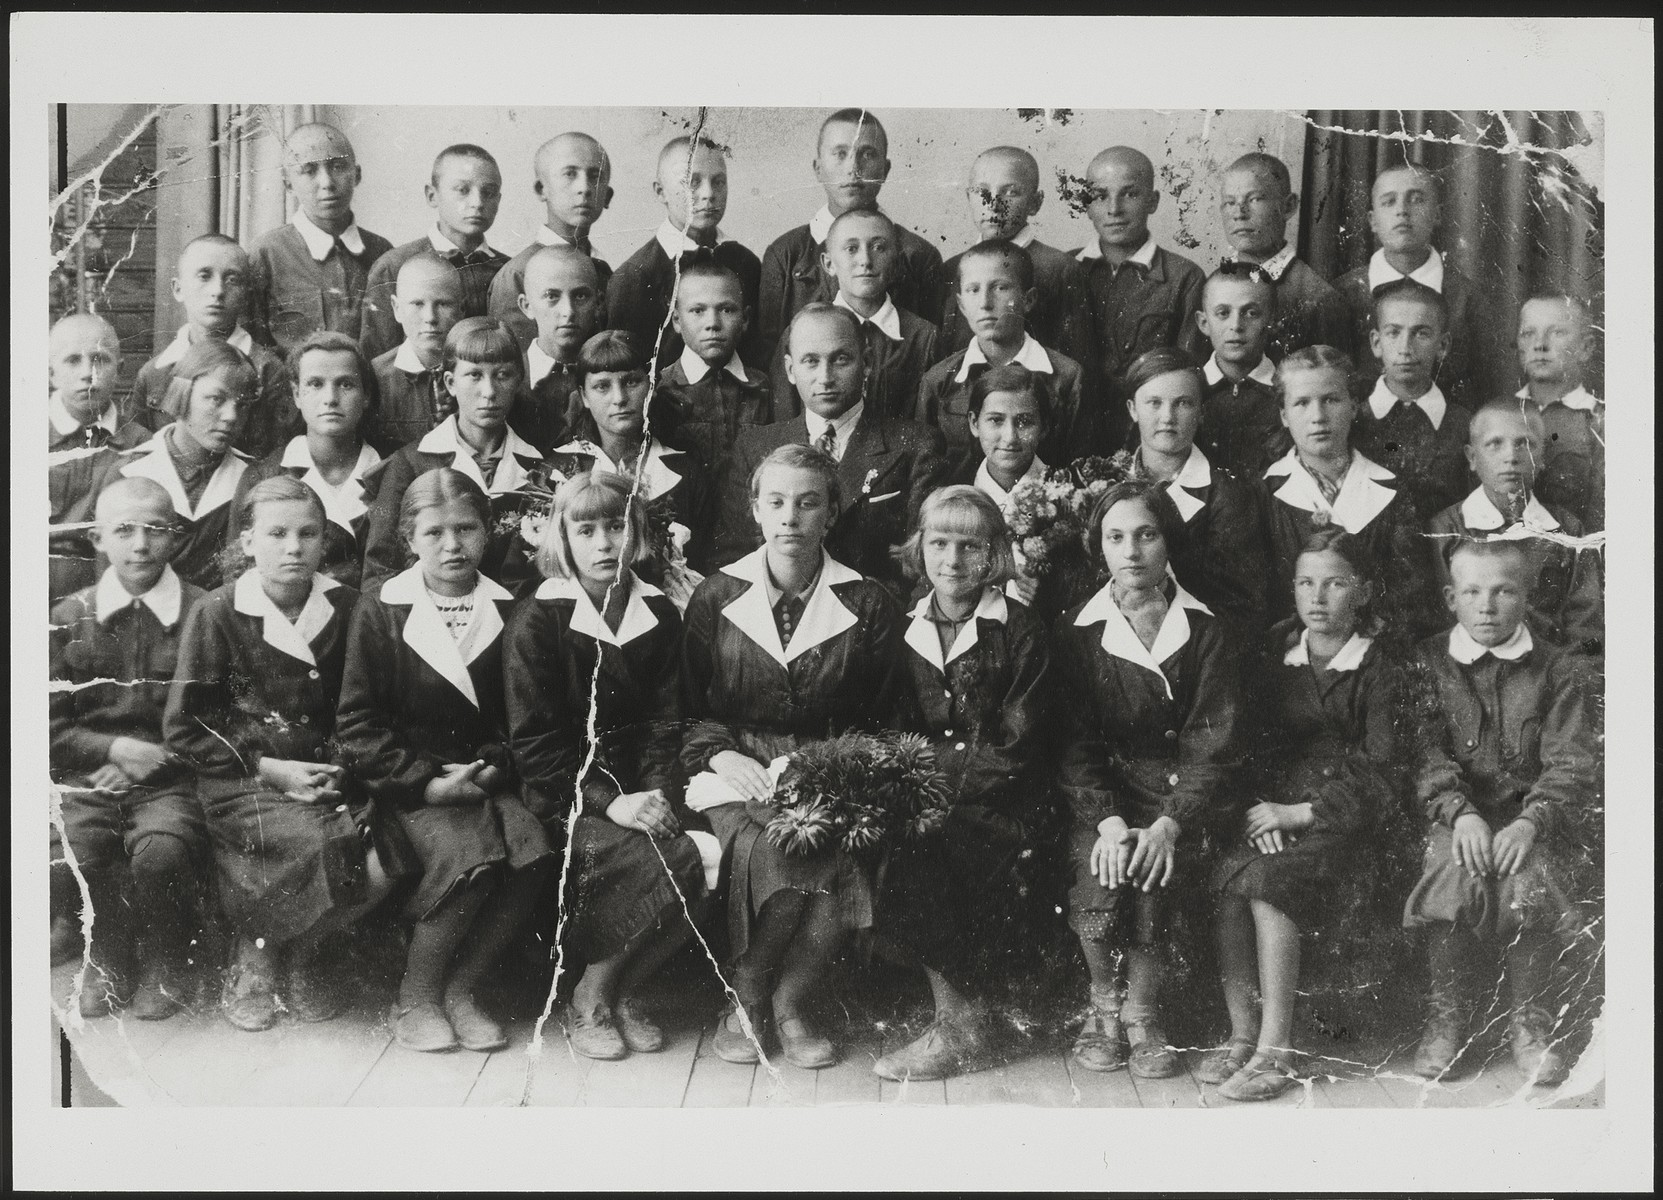 Polish and Jewish children in the Polish public school in Eisiskes.   Second row from top: second from right is Shlomo Tevke Paikowski; third from right is Leon Kahn, fifth from right is Shmuel Sovitzky (behind the teacher). Third row from top: teacher Antonovicz is sitting in the center (he was a member of the Polish Home Army).  Hayya Levitan (second row from bottom, fourth from right) Front row, third from right is Menuha Michalowski.   Leon Kahn survived the Holocaust. All the other Jewish children were murdered during the Holocaust.